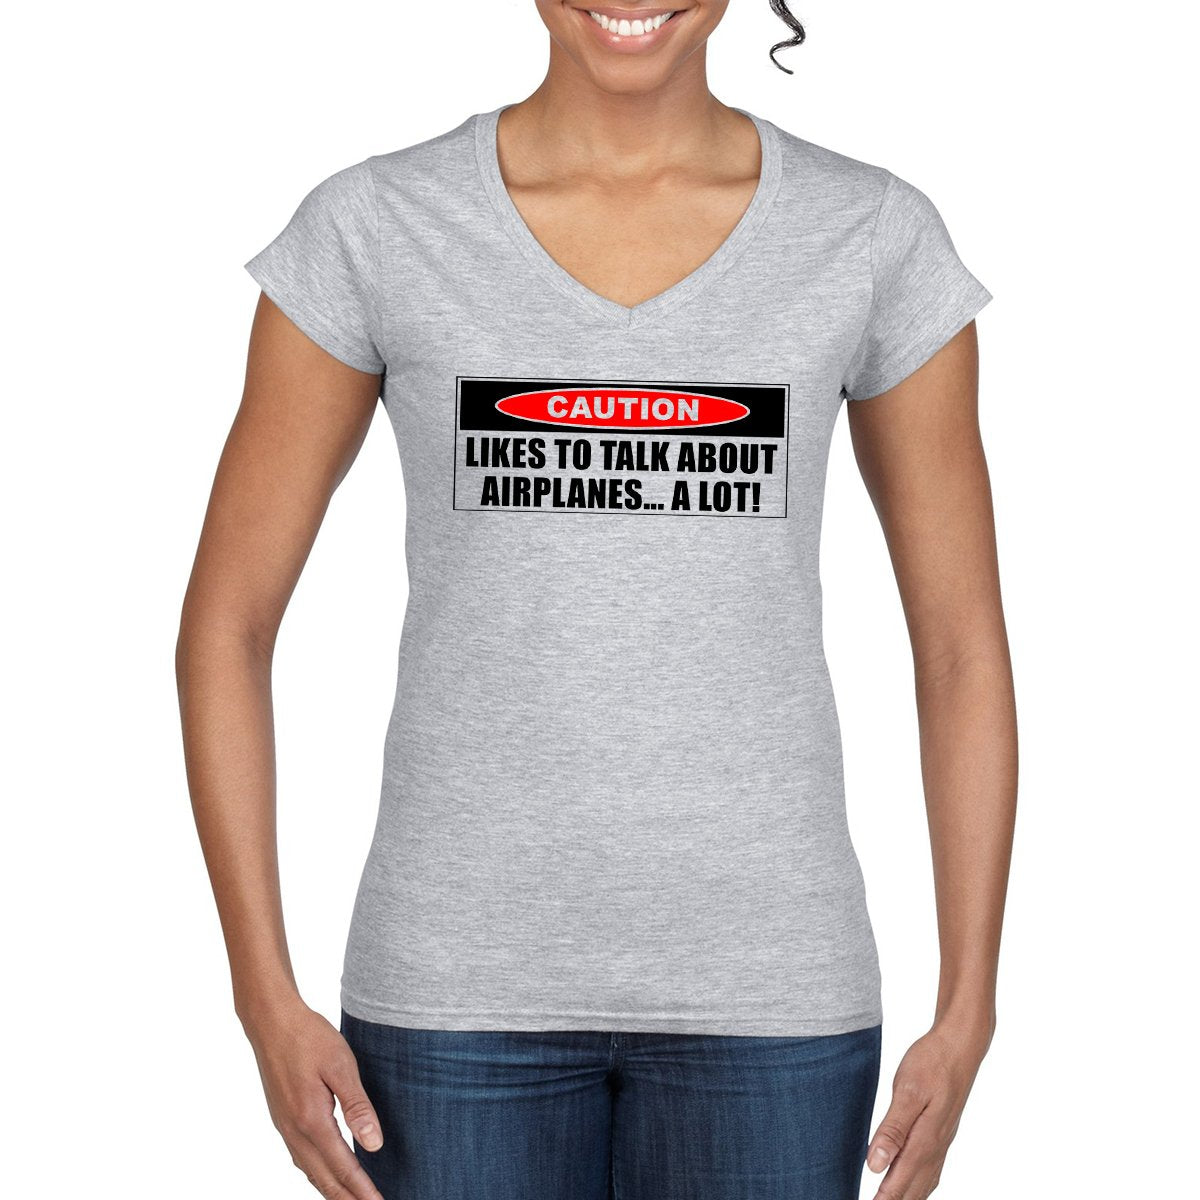 CAUTION Women's Semi-Fitted T-Shirt